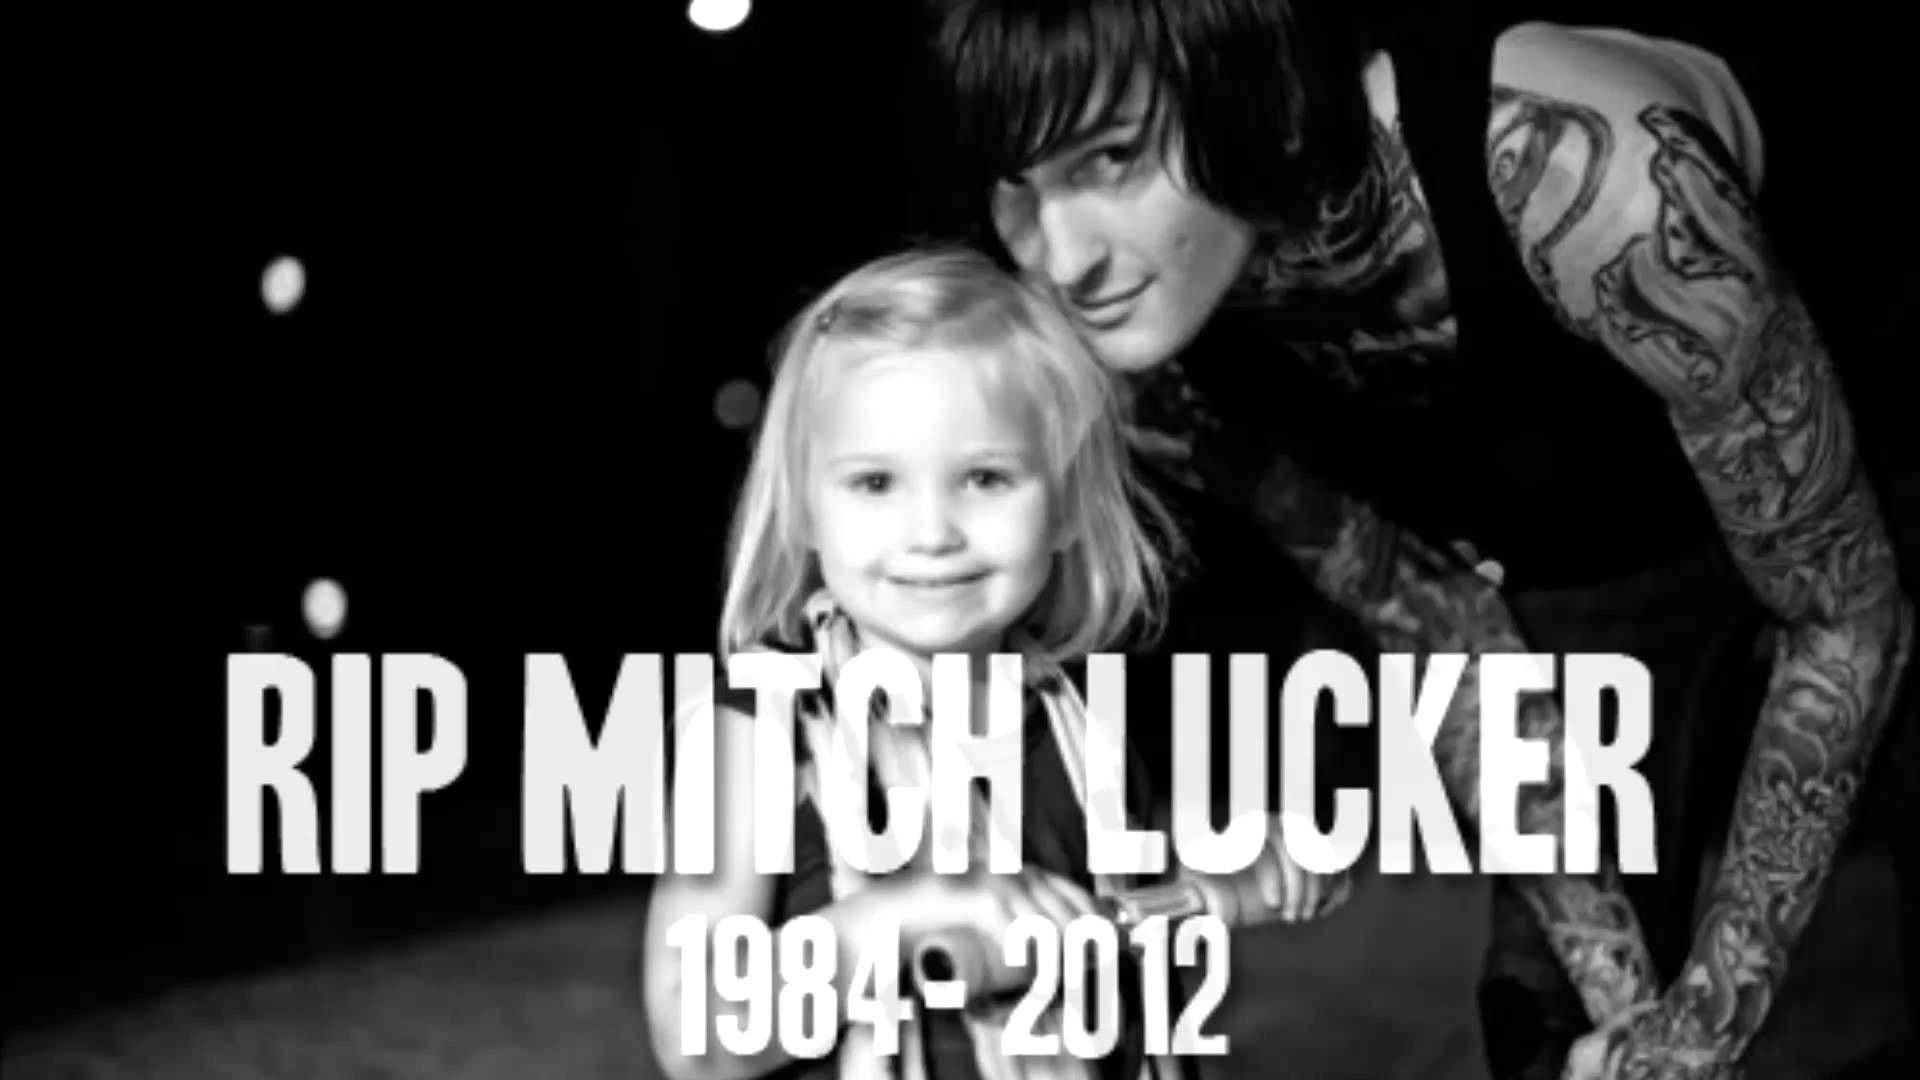 1920x1080 Mitch Lucker R.I.P